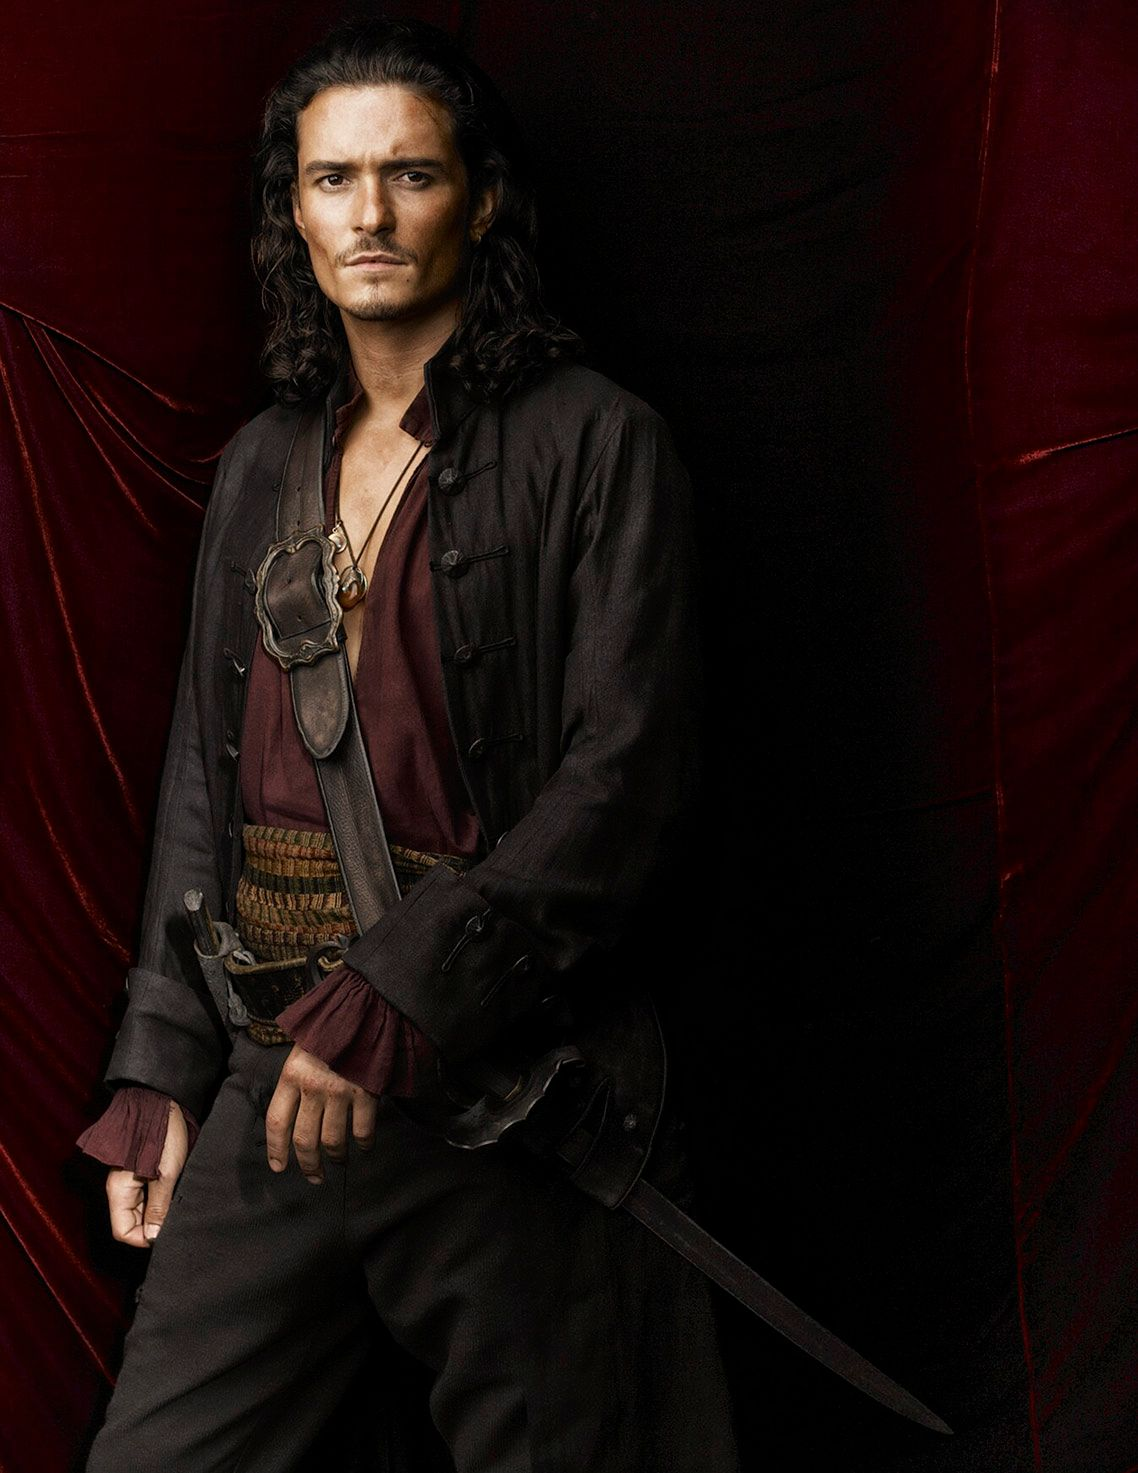 ORLANDO BLOOM • PIRATES OF THE CARIBBEAN • AT WORLD'S END